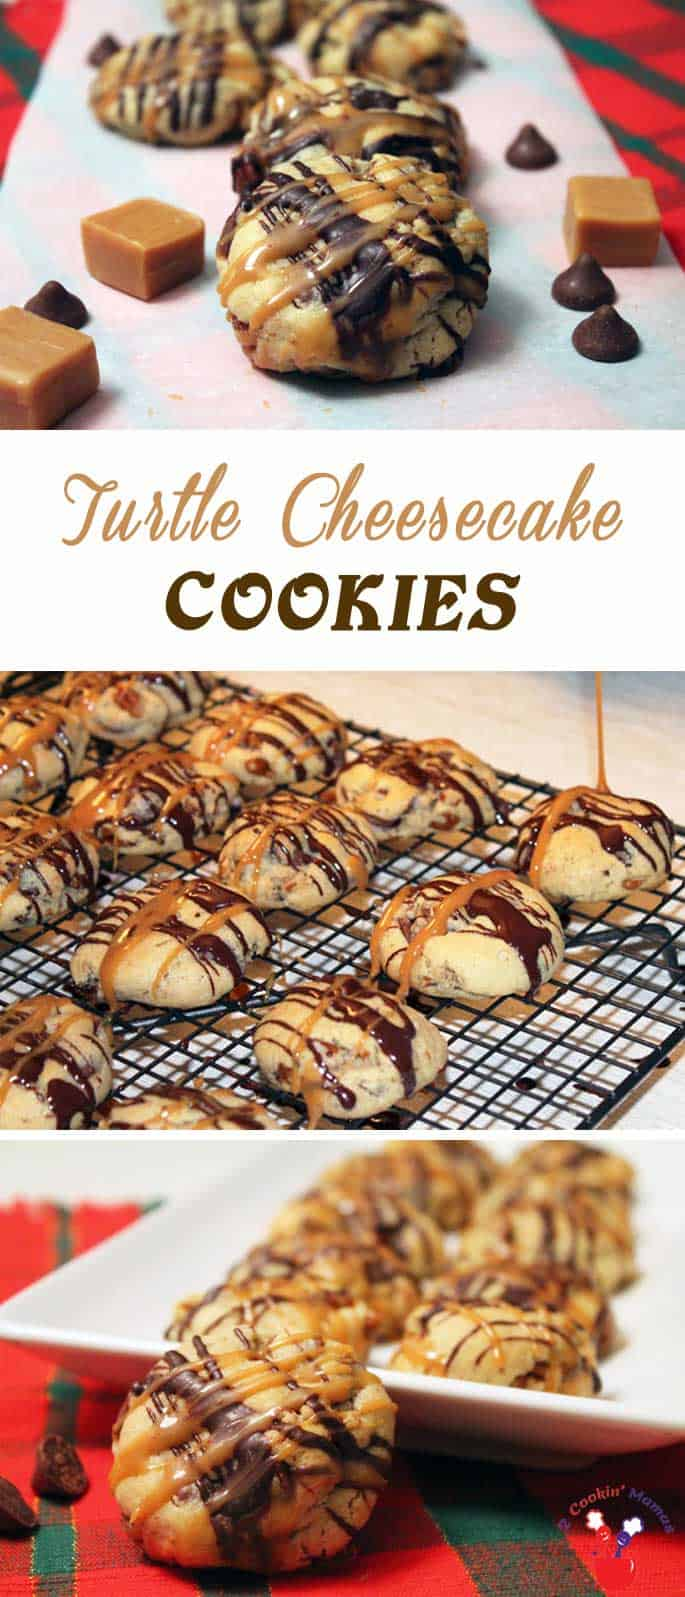 Rich & delicious turtle cheesecake cookies baked with caramel filled chocolate pieces & pecans then drizzled with chocolate & gooey caramel. #cookies #Christmascookies #caramel #cheesecakecookies